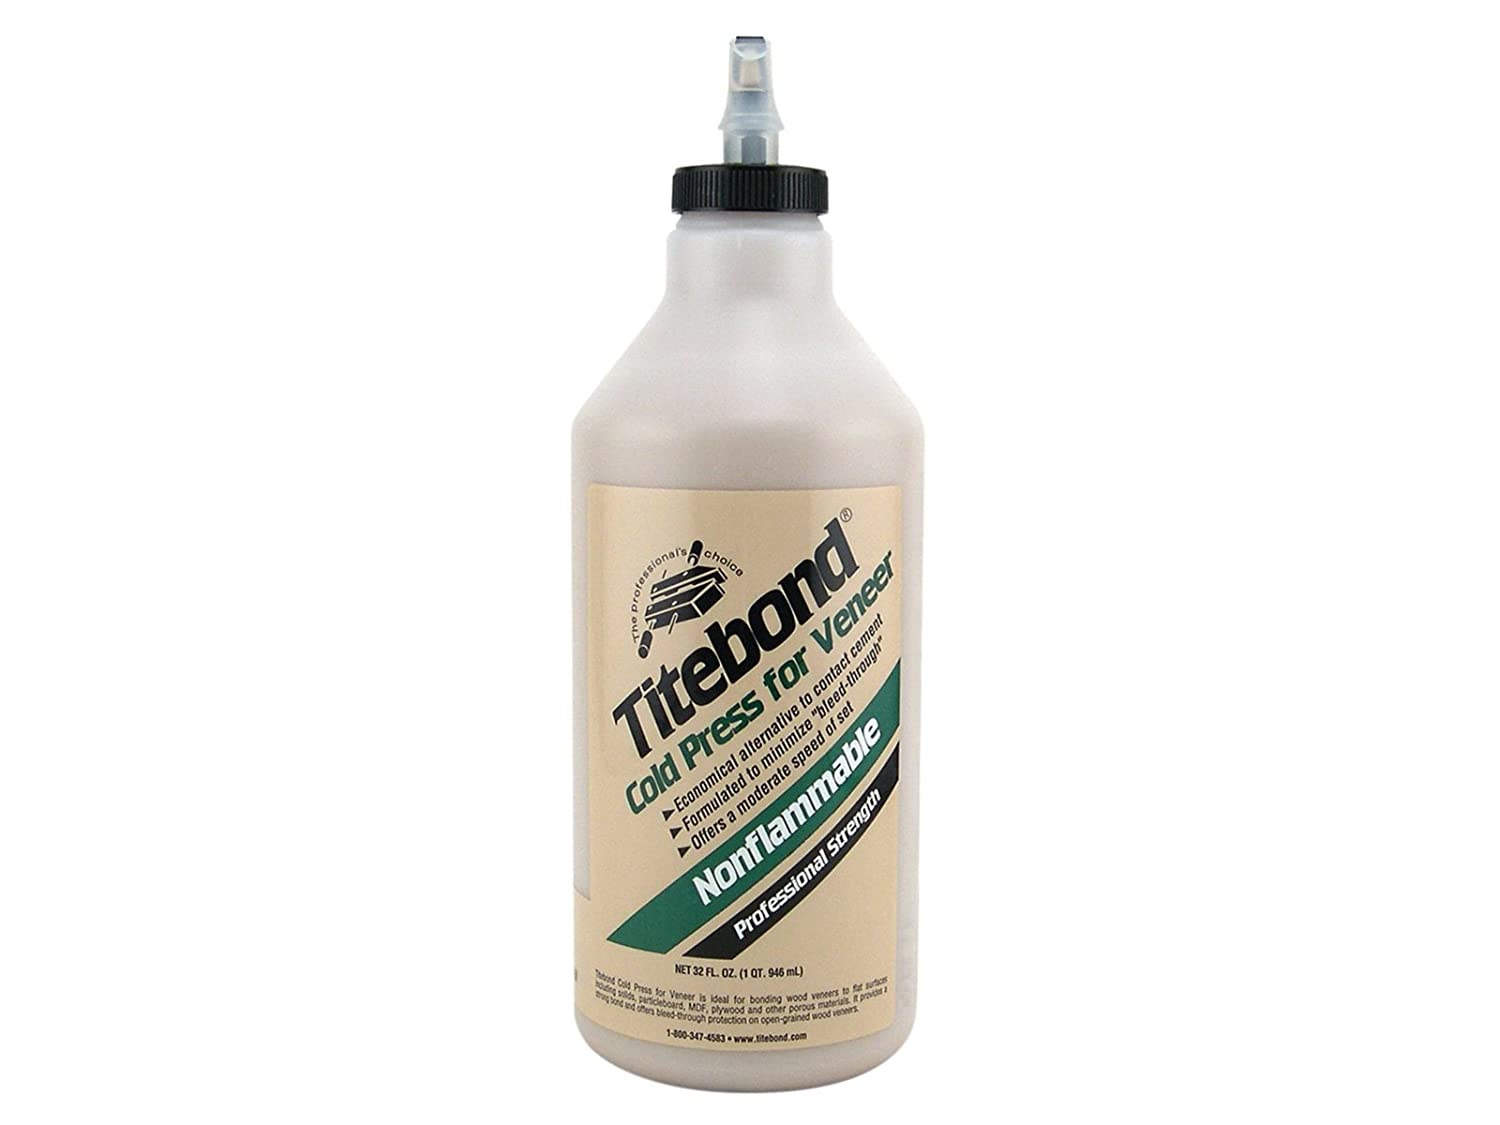 5175 Titebond Glue, Cold Press for Veneer, 1 Quart, Brown